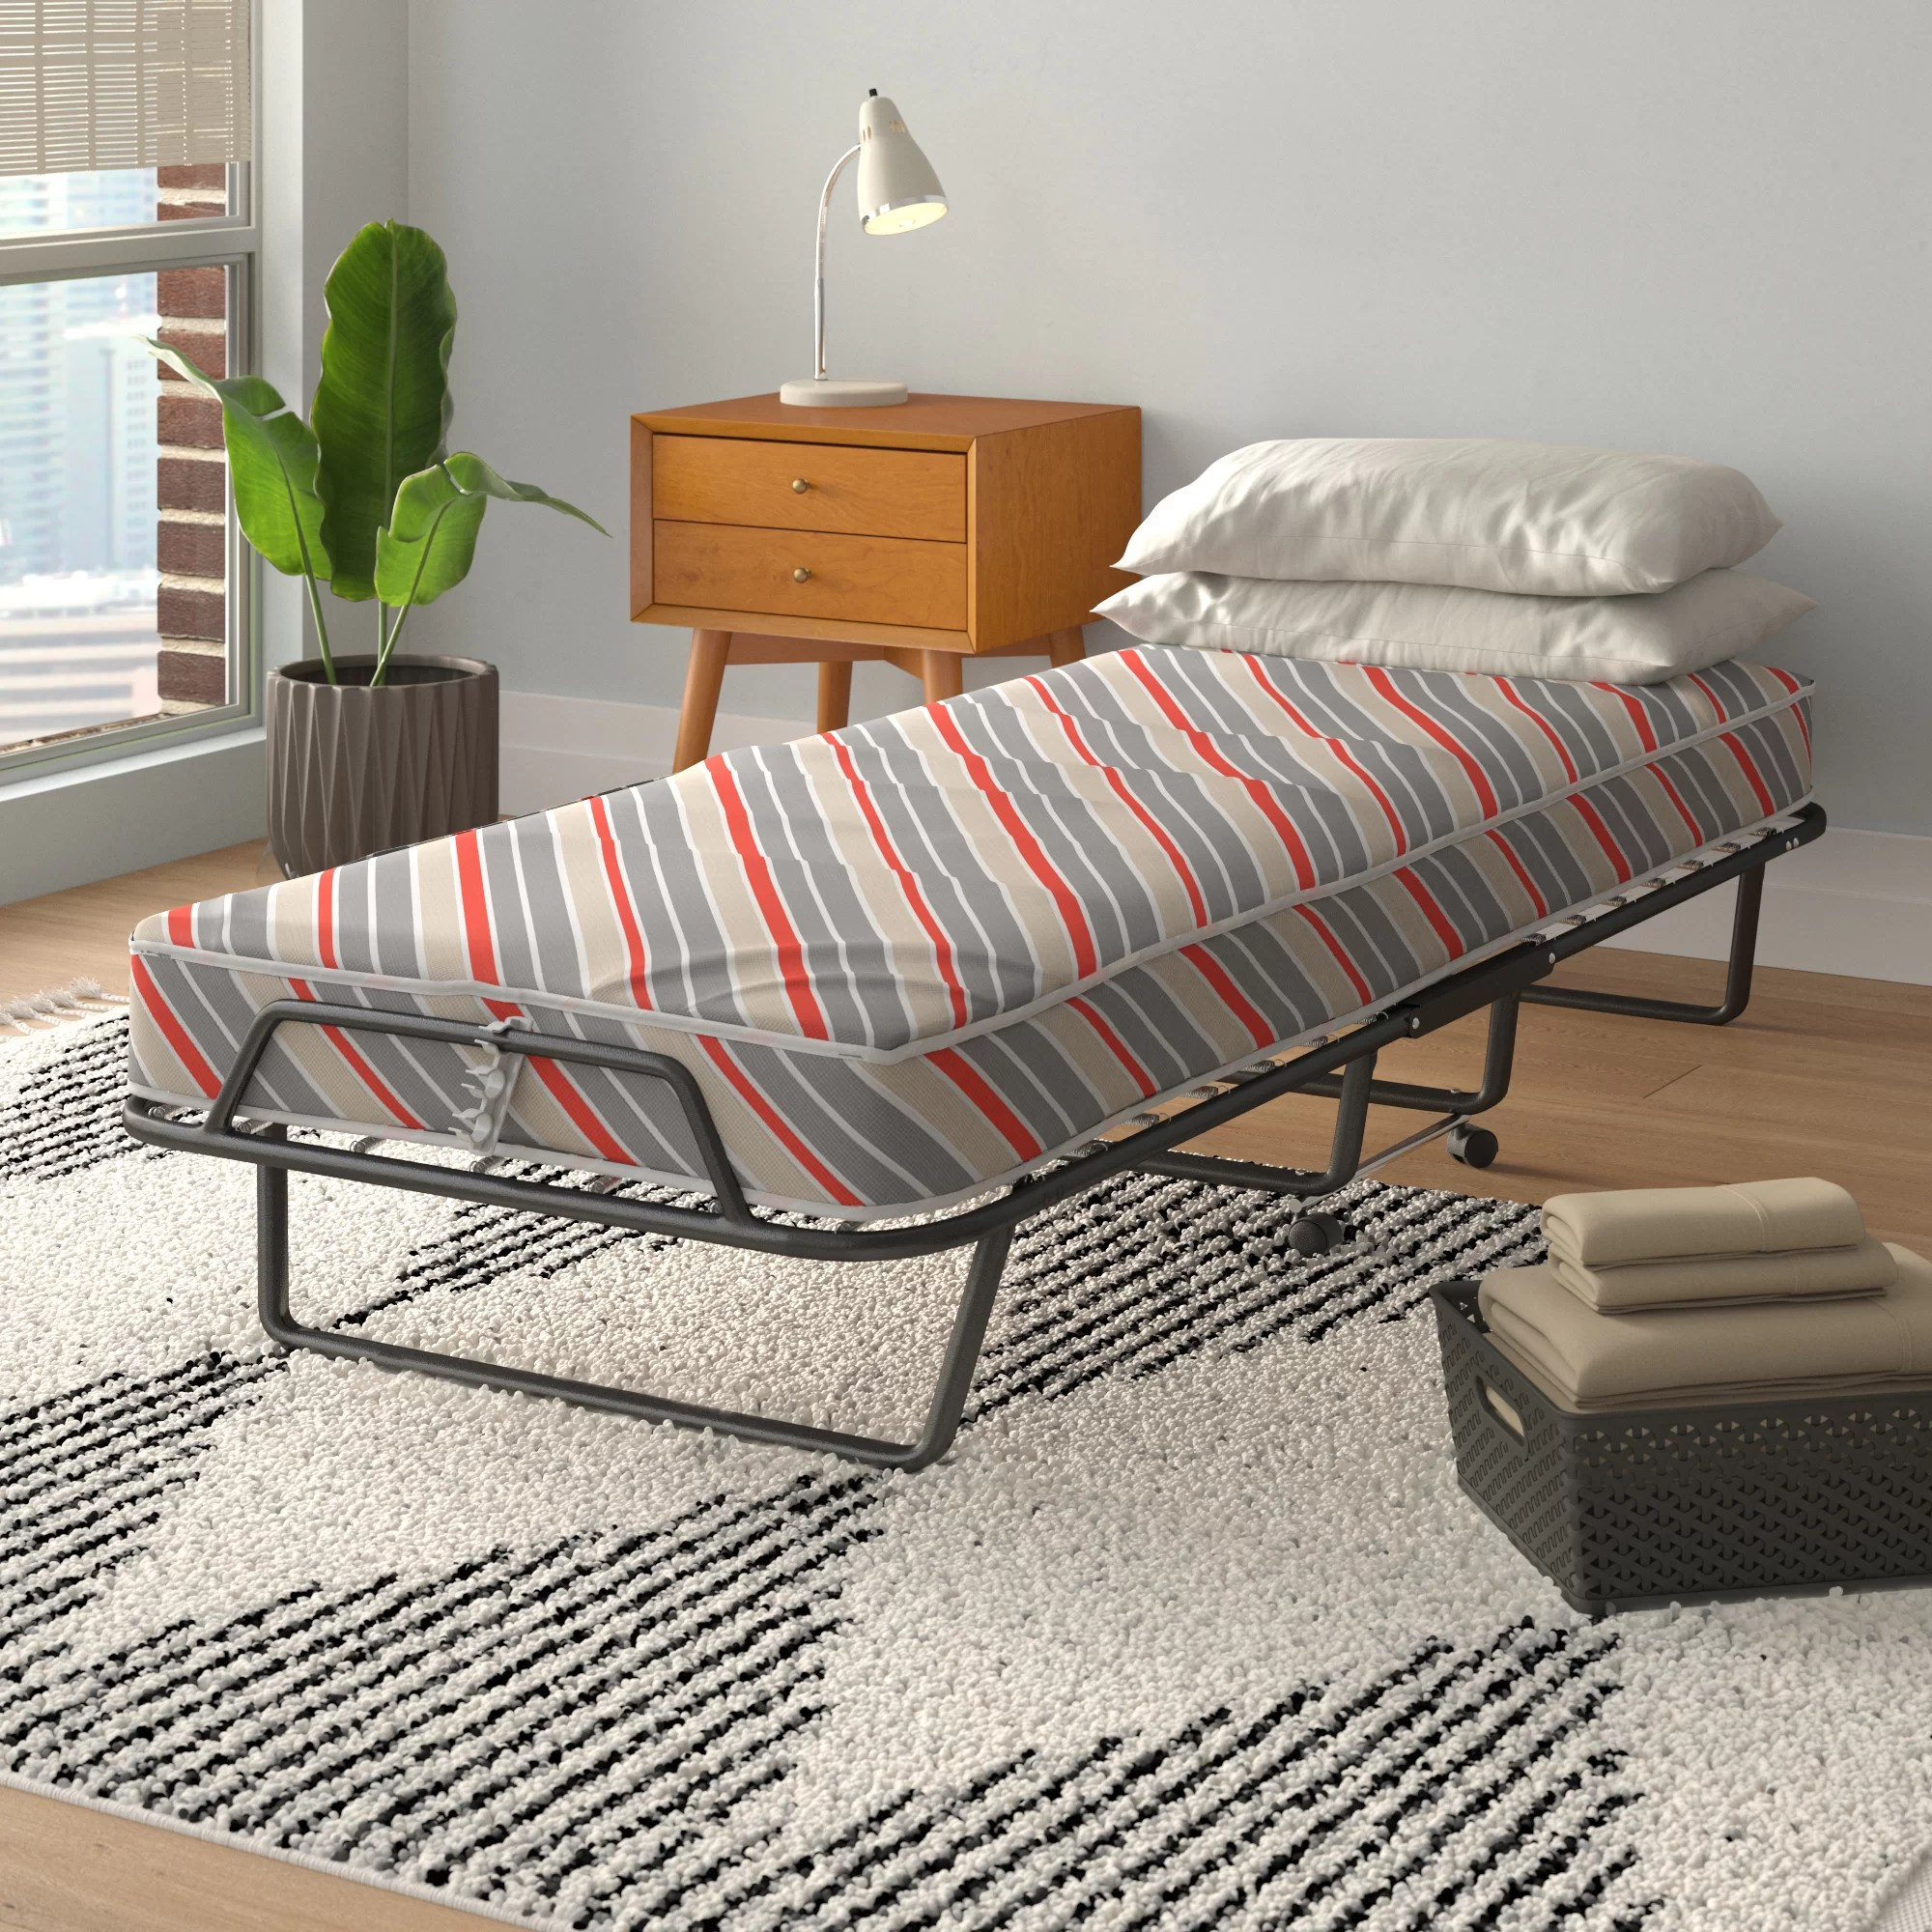 Alwyn Home Arely Black Folding Bed Reviews